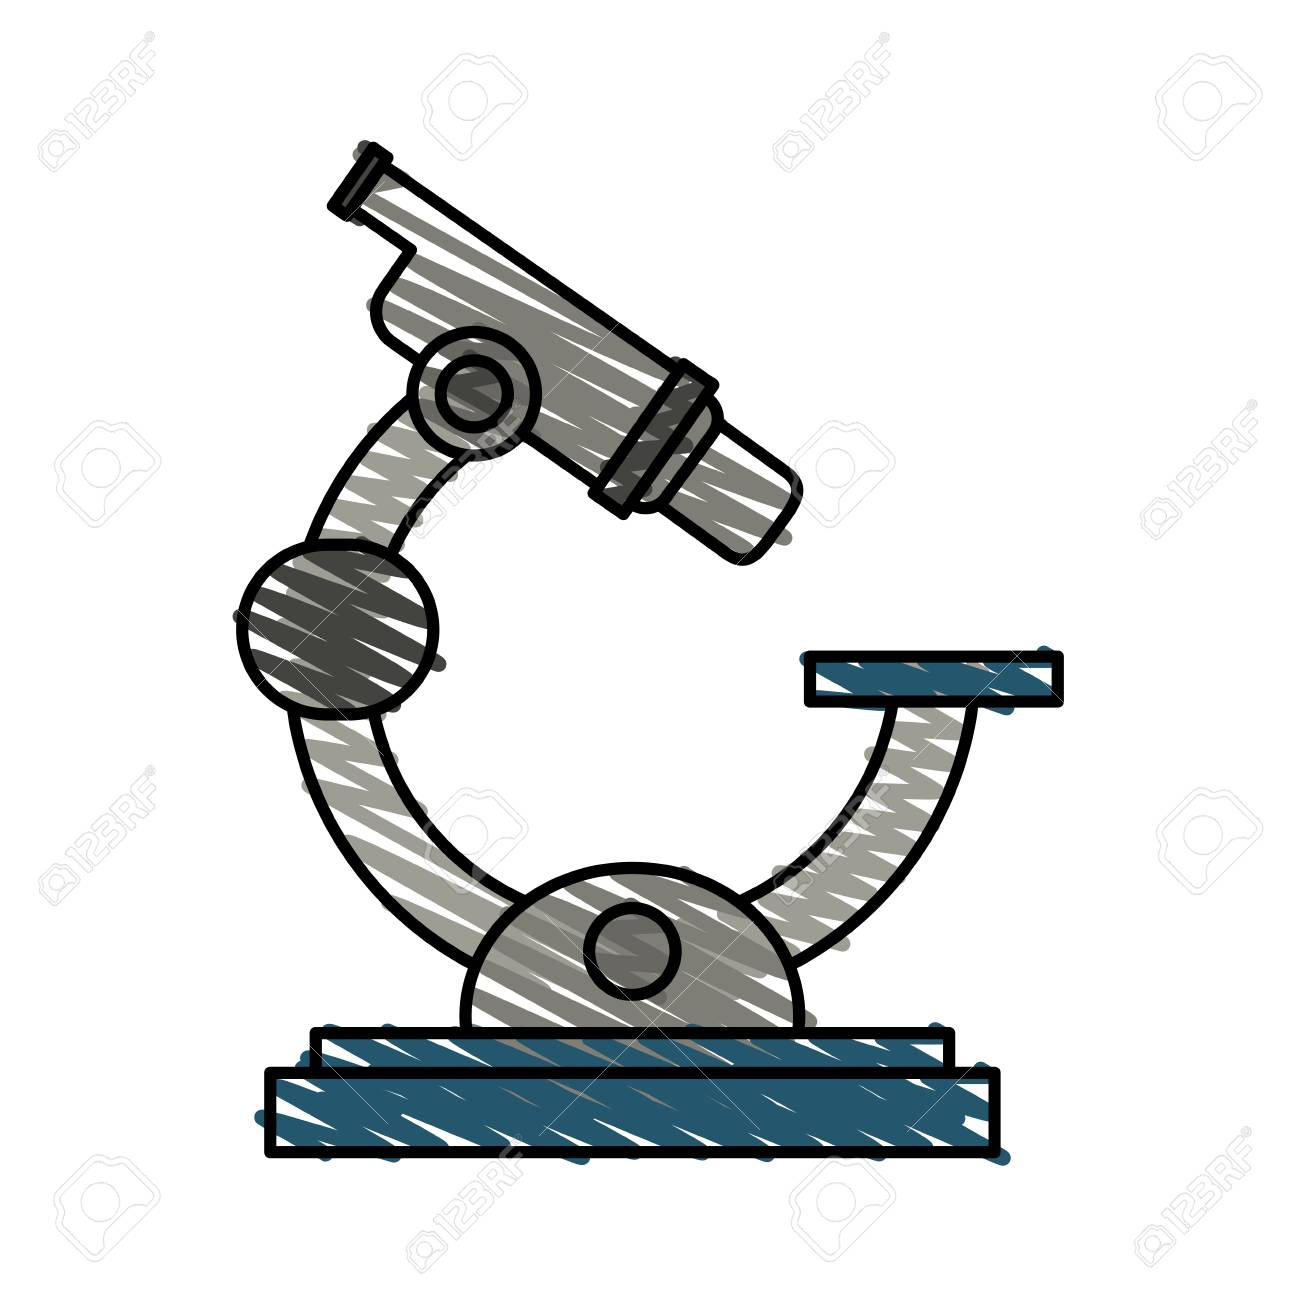 color crayon stripe cartoon microscope science tool vector illustration royalty free cliparts vectors and stock illustration image 78496780 color crayon stripe cartoon microscope science tool vector illustration